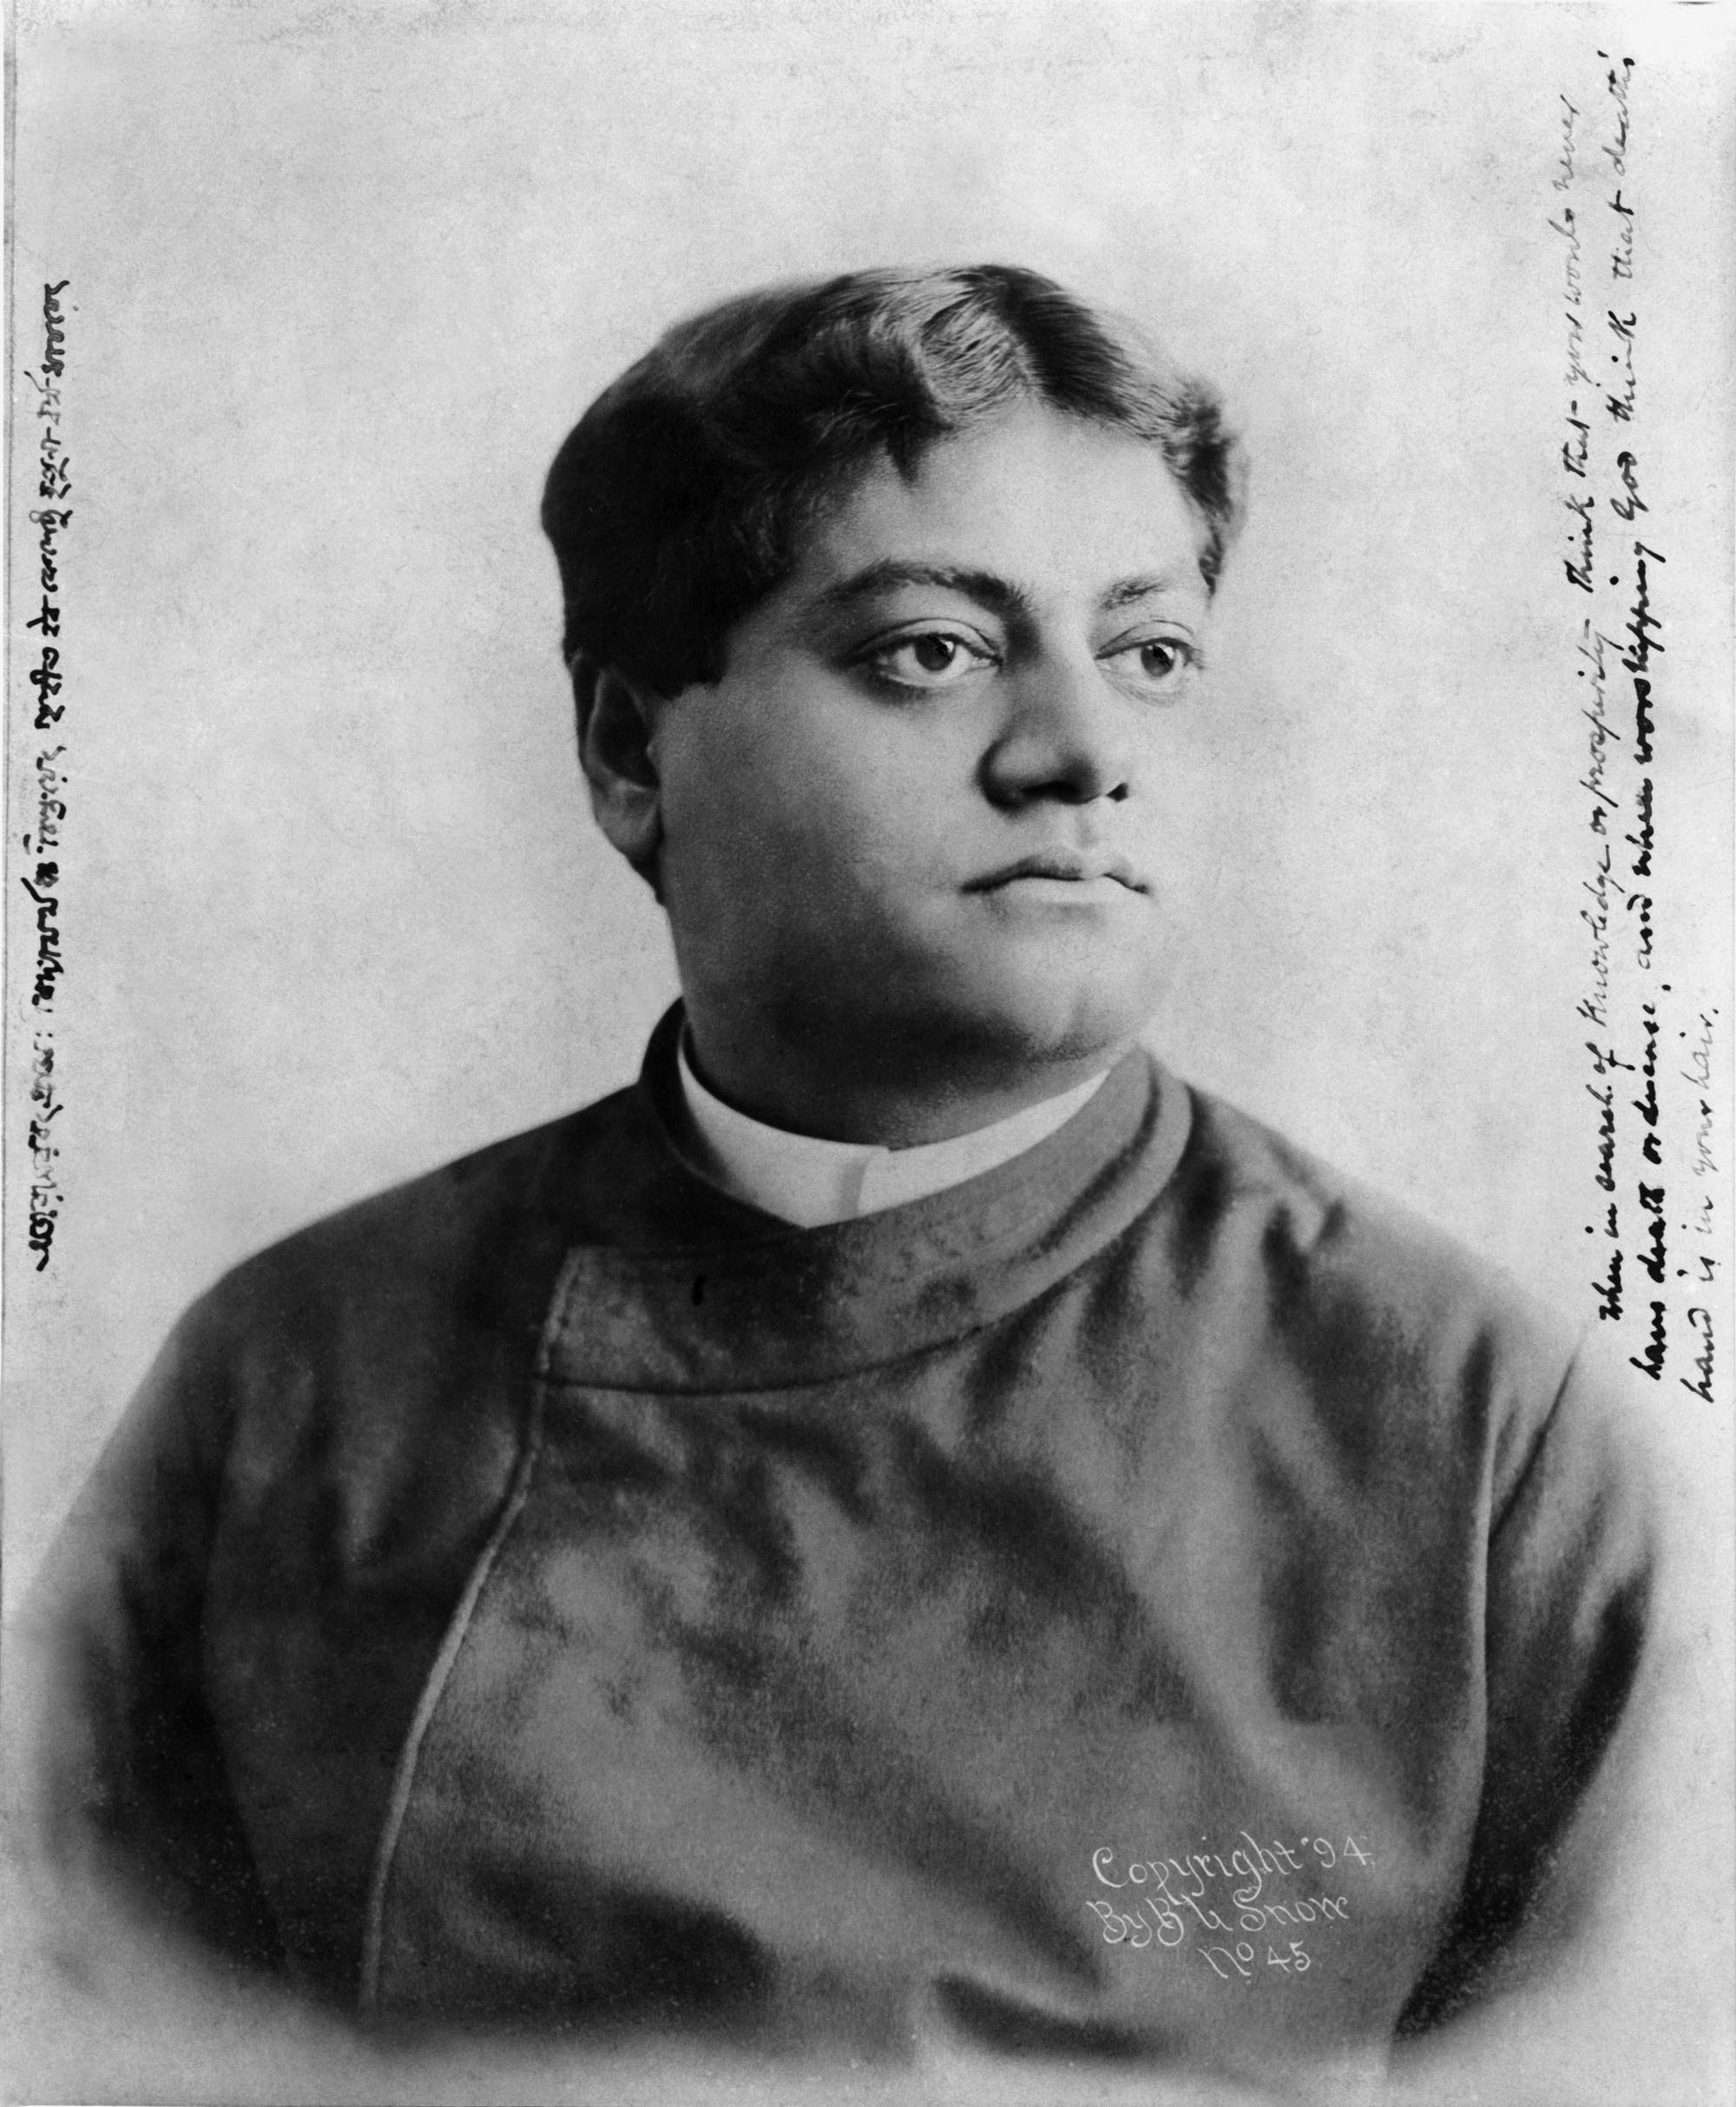 """(#29) Chicago, 1894. This photo was taken by E. B. Snow. Swamiji's inscription reads: """" Ajarāmaravat prājñaḥ vidyāṁ arthañca cintayet; Gṛhitvā iva keśeṣu mṛtyunā dharmaṁ ācaret.  When in search of knowledge or prosperity, think that you would never have death or disease, and when worshipping God, think that death's hand is in your hair."""""""